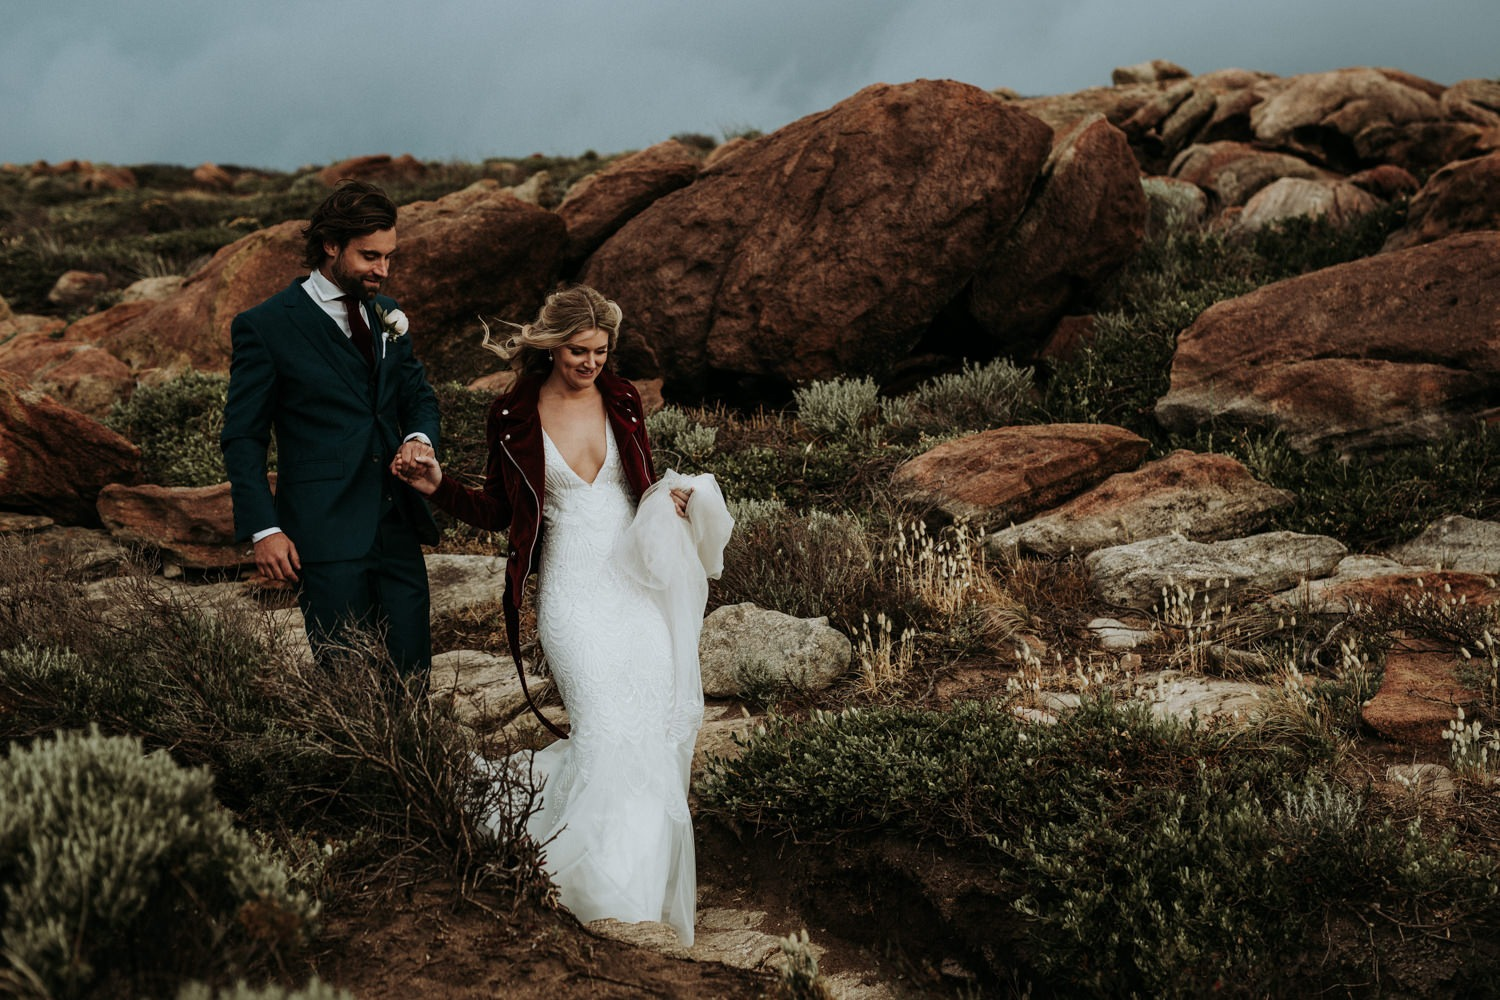 Eclectic couple walking near the coast for their wedding photos